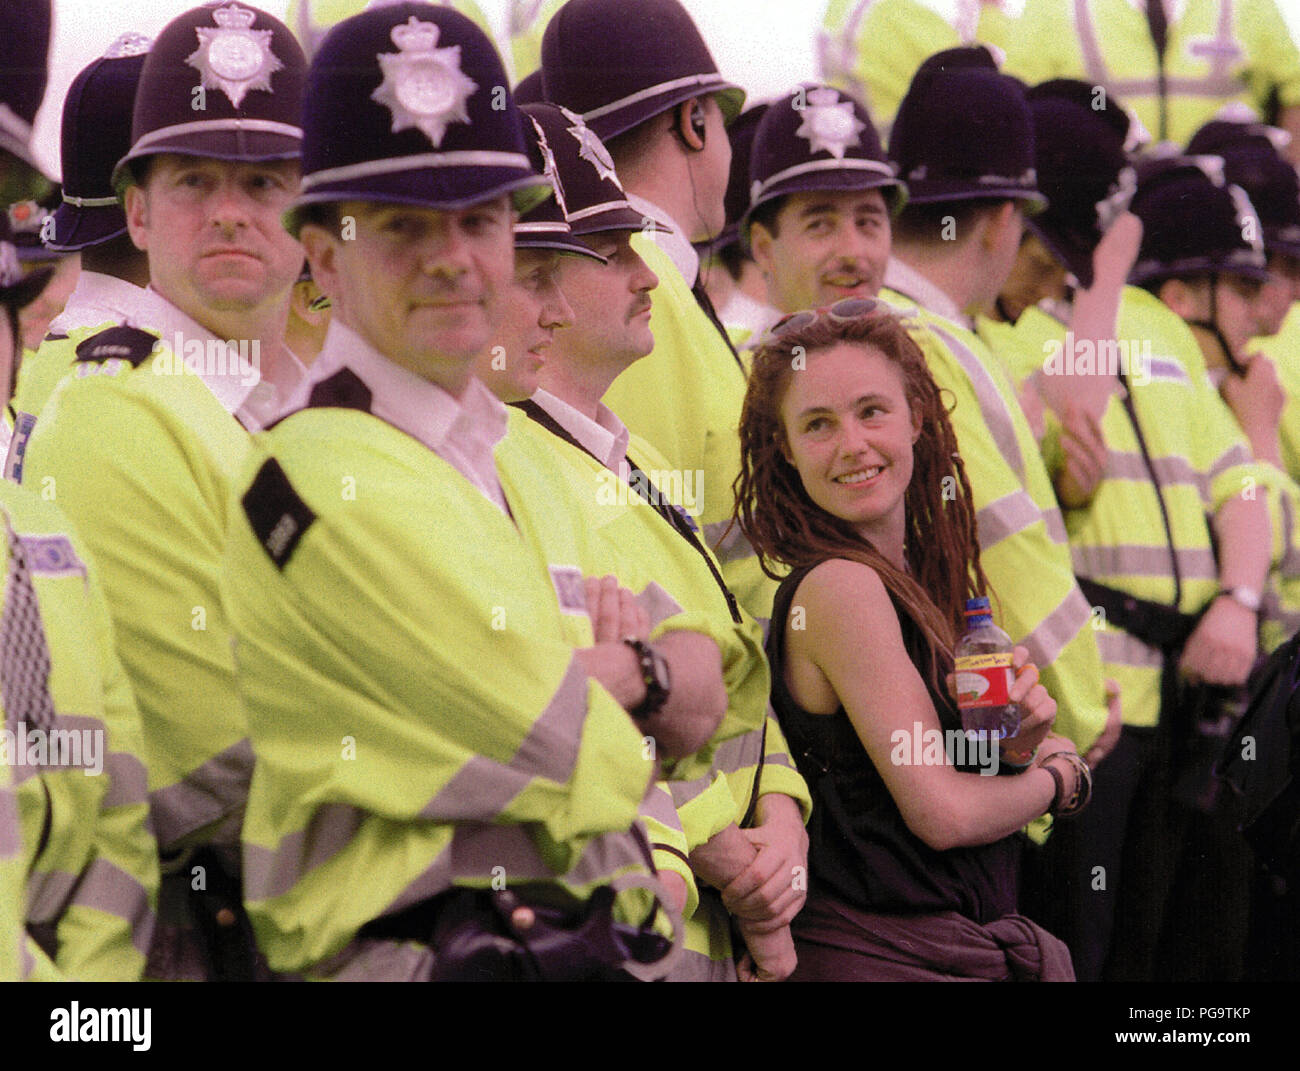 All smiles as a woman joins in with the Police lines at a Free The Streets demonstration, Birmingham, circa 2001 Stock Photo